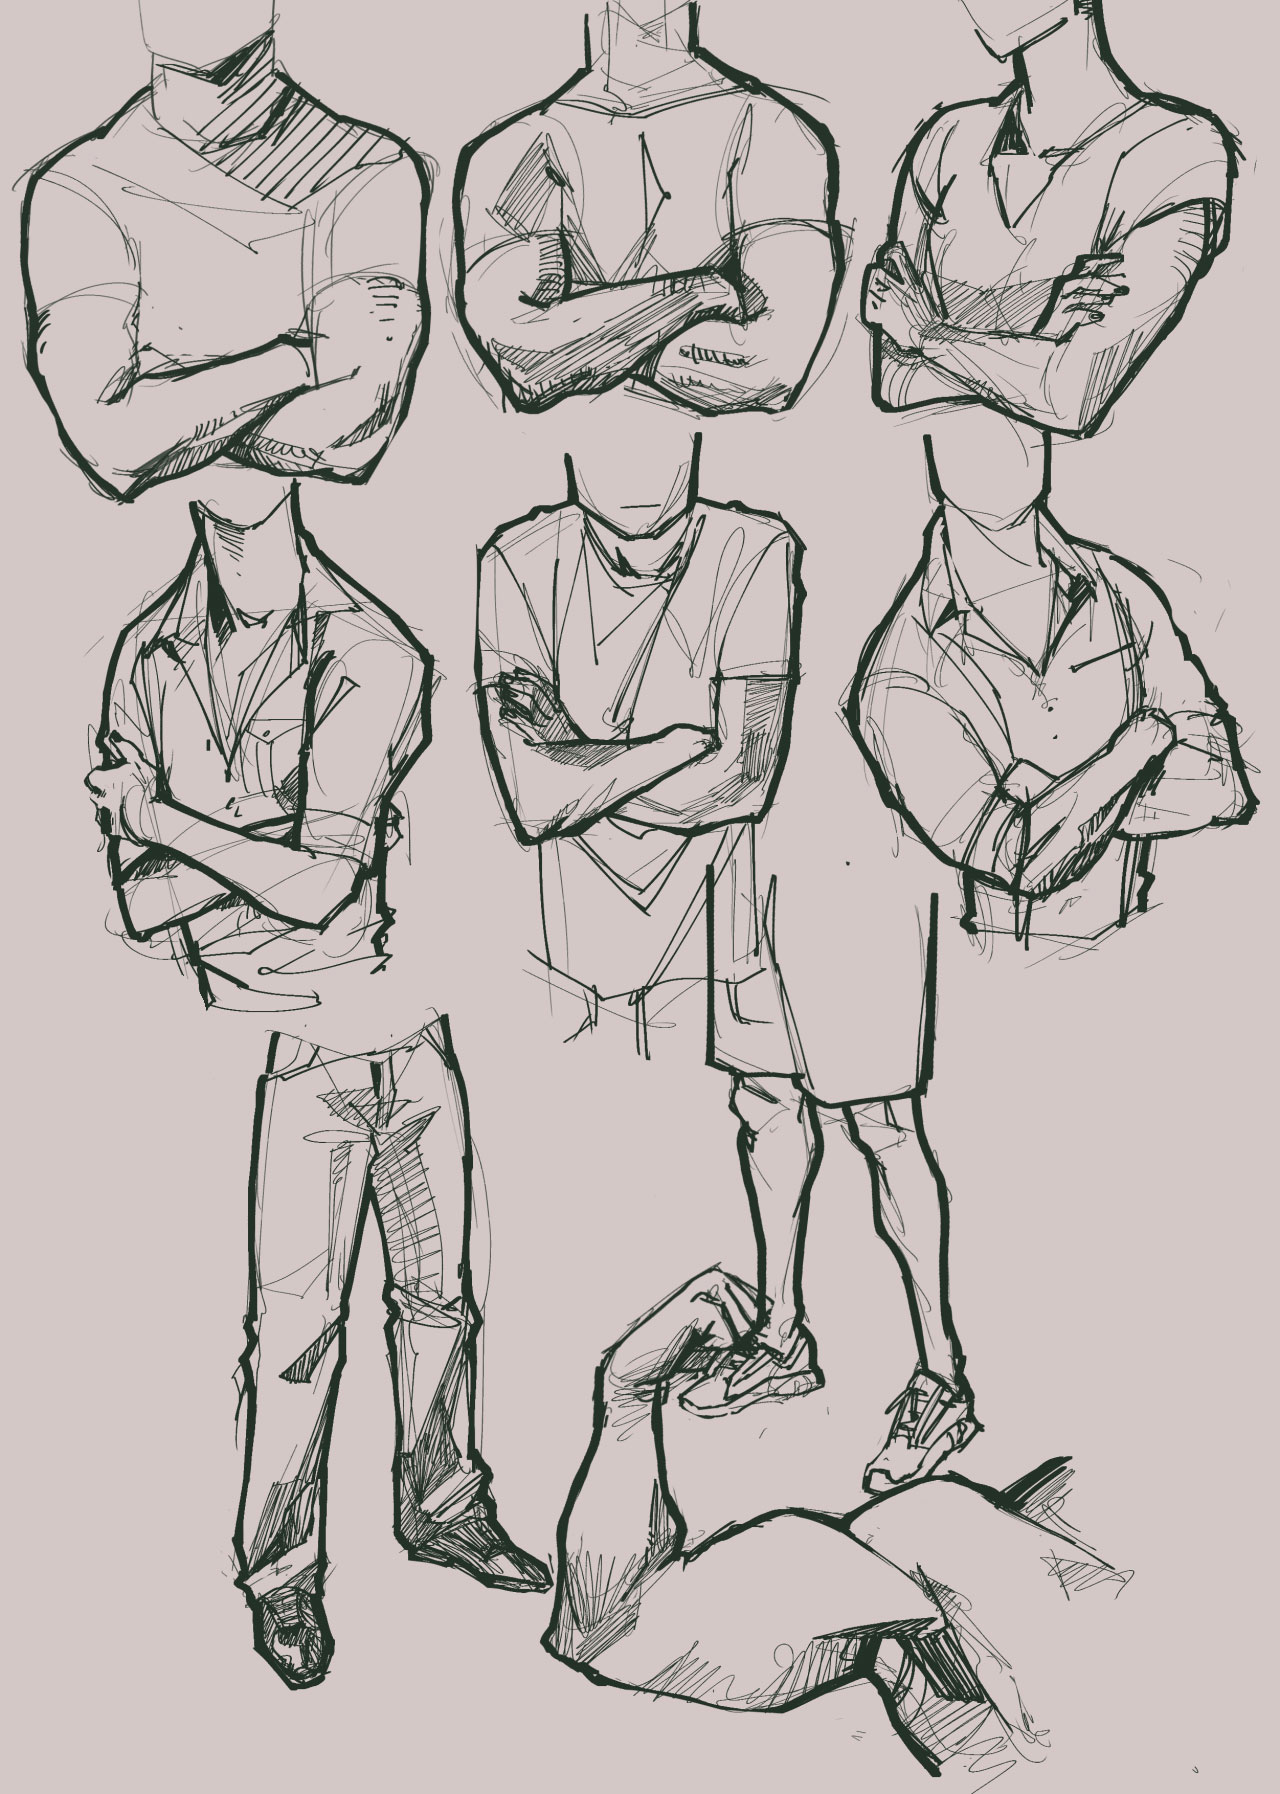 Arms crossed drawing reference